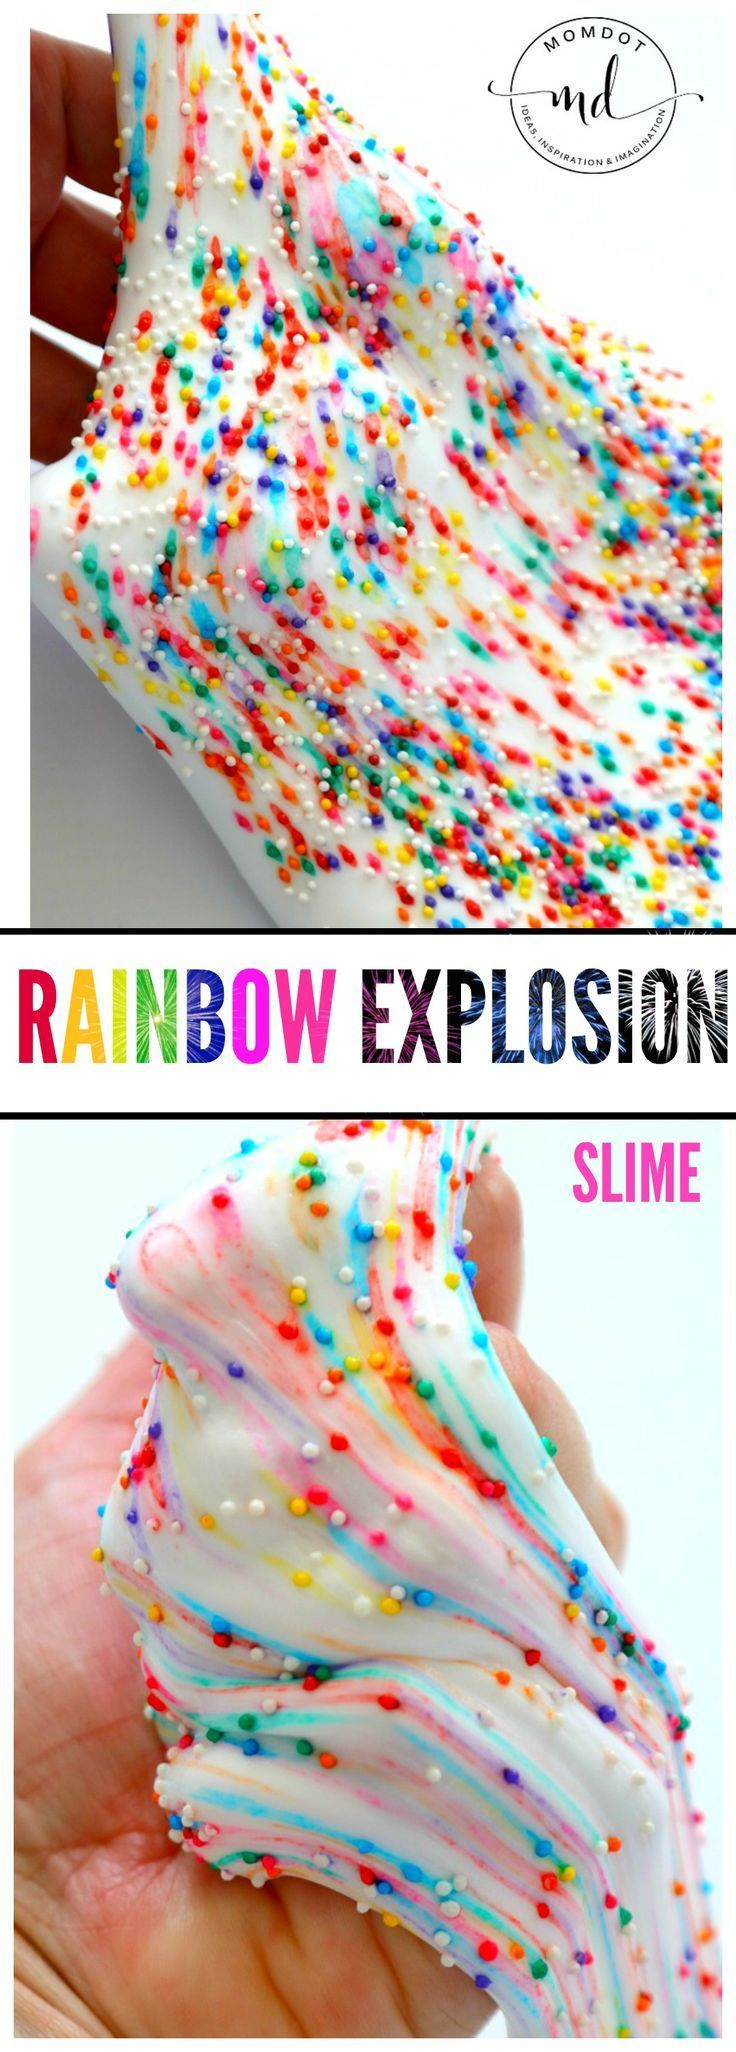 Rainbow Explosion Slime : How to make fluffy slime that explodes into rainbows, BLOW YOUR MIND!